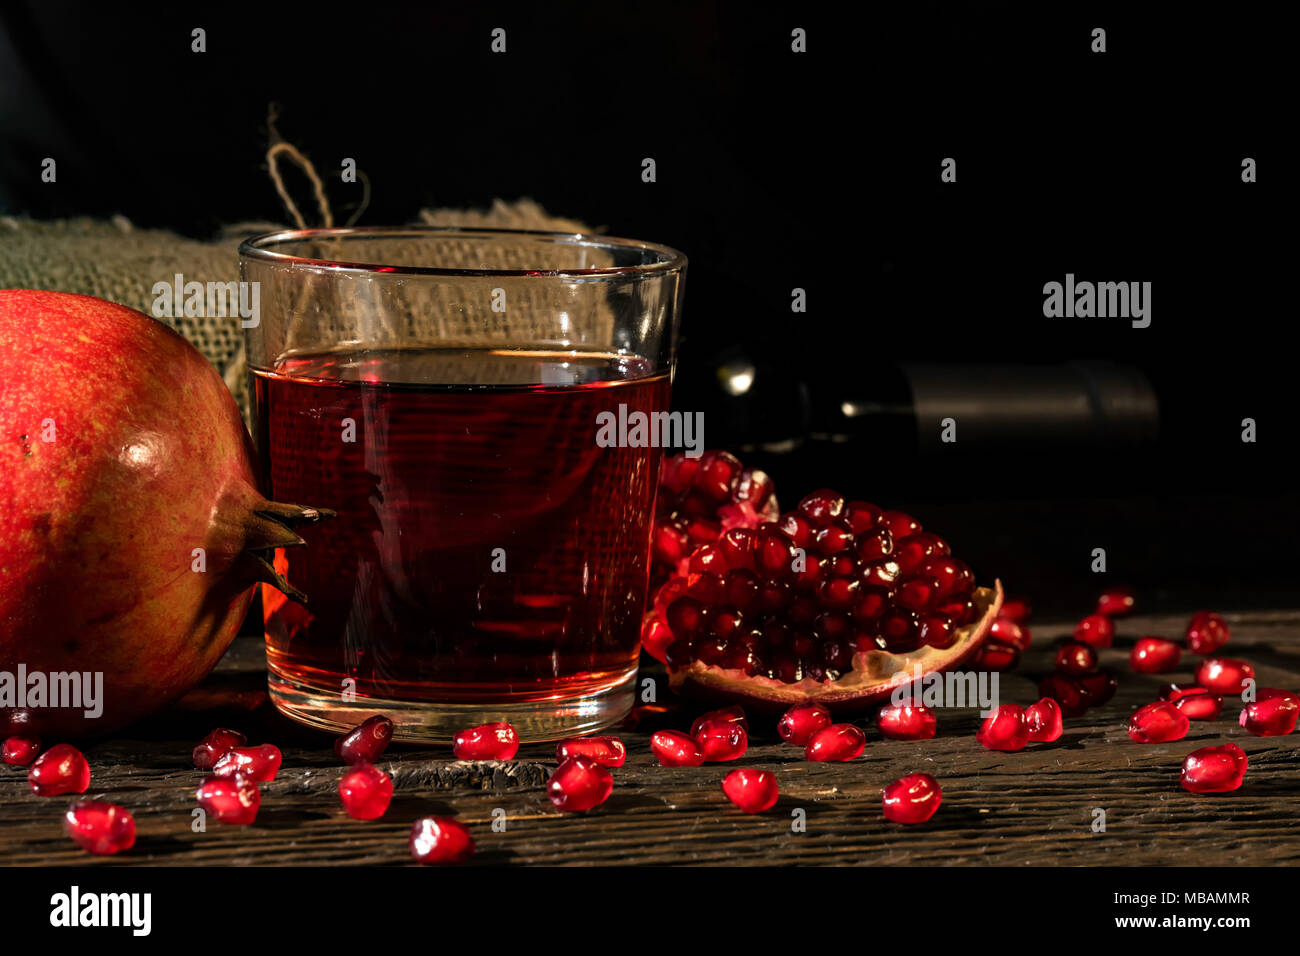 Pomegranate fruit, wine in glass and wine bottle - Stock Image